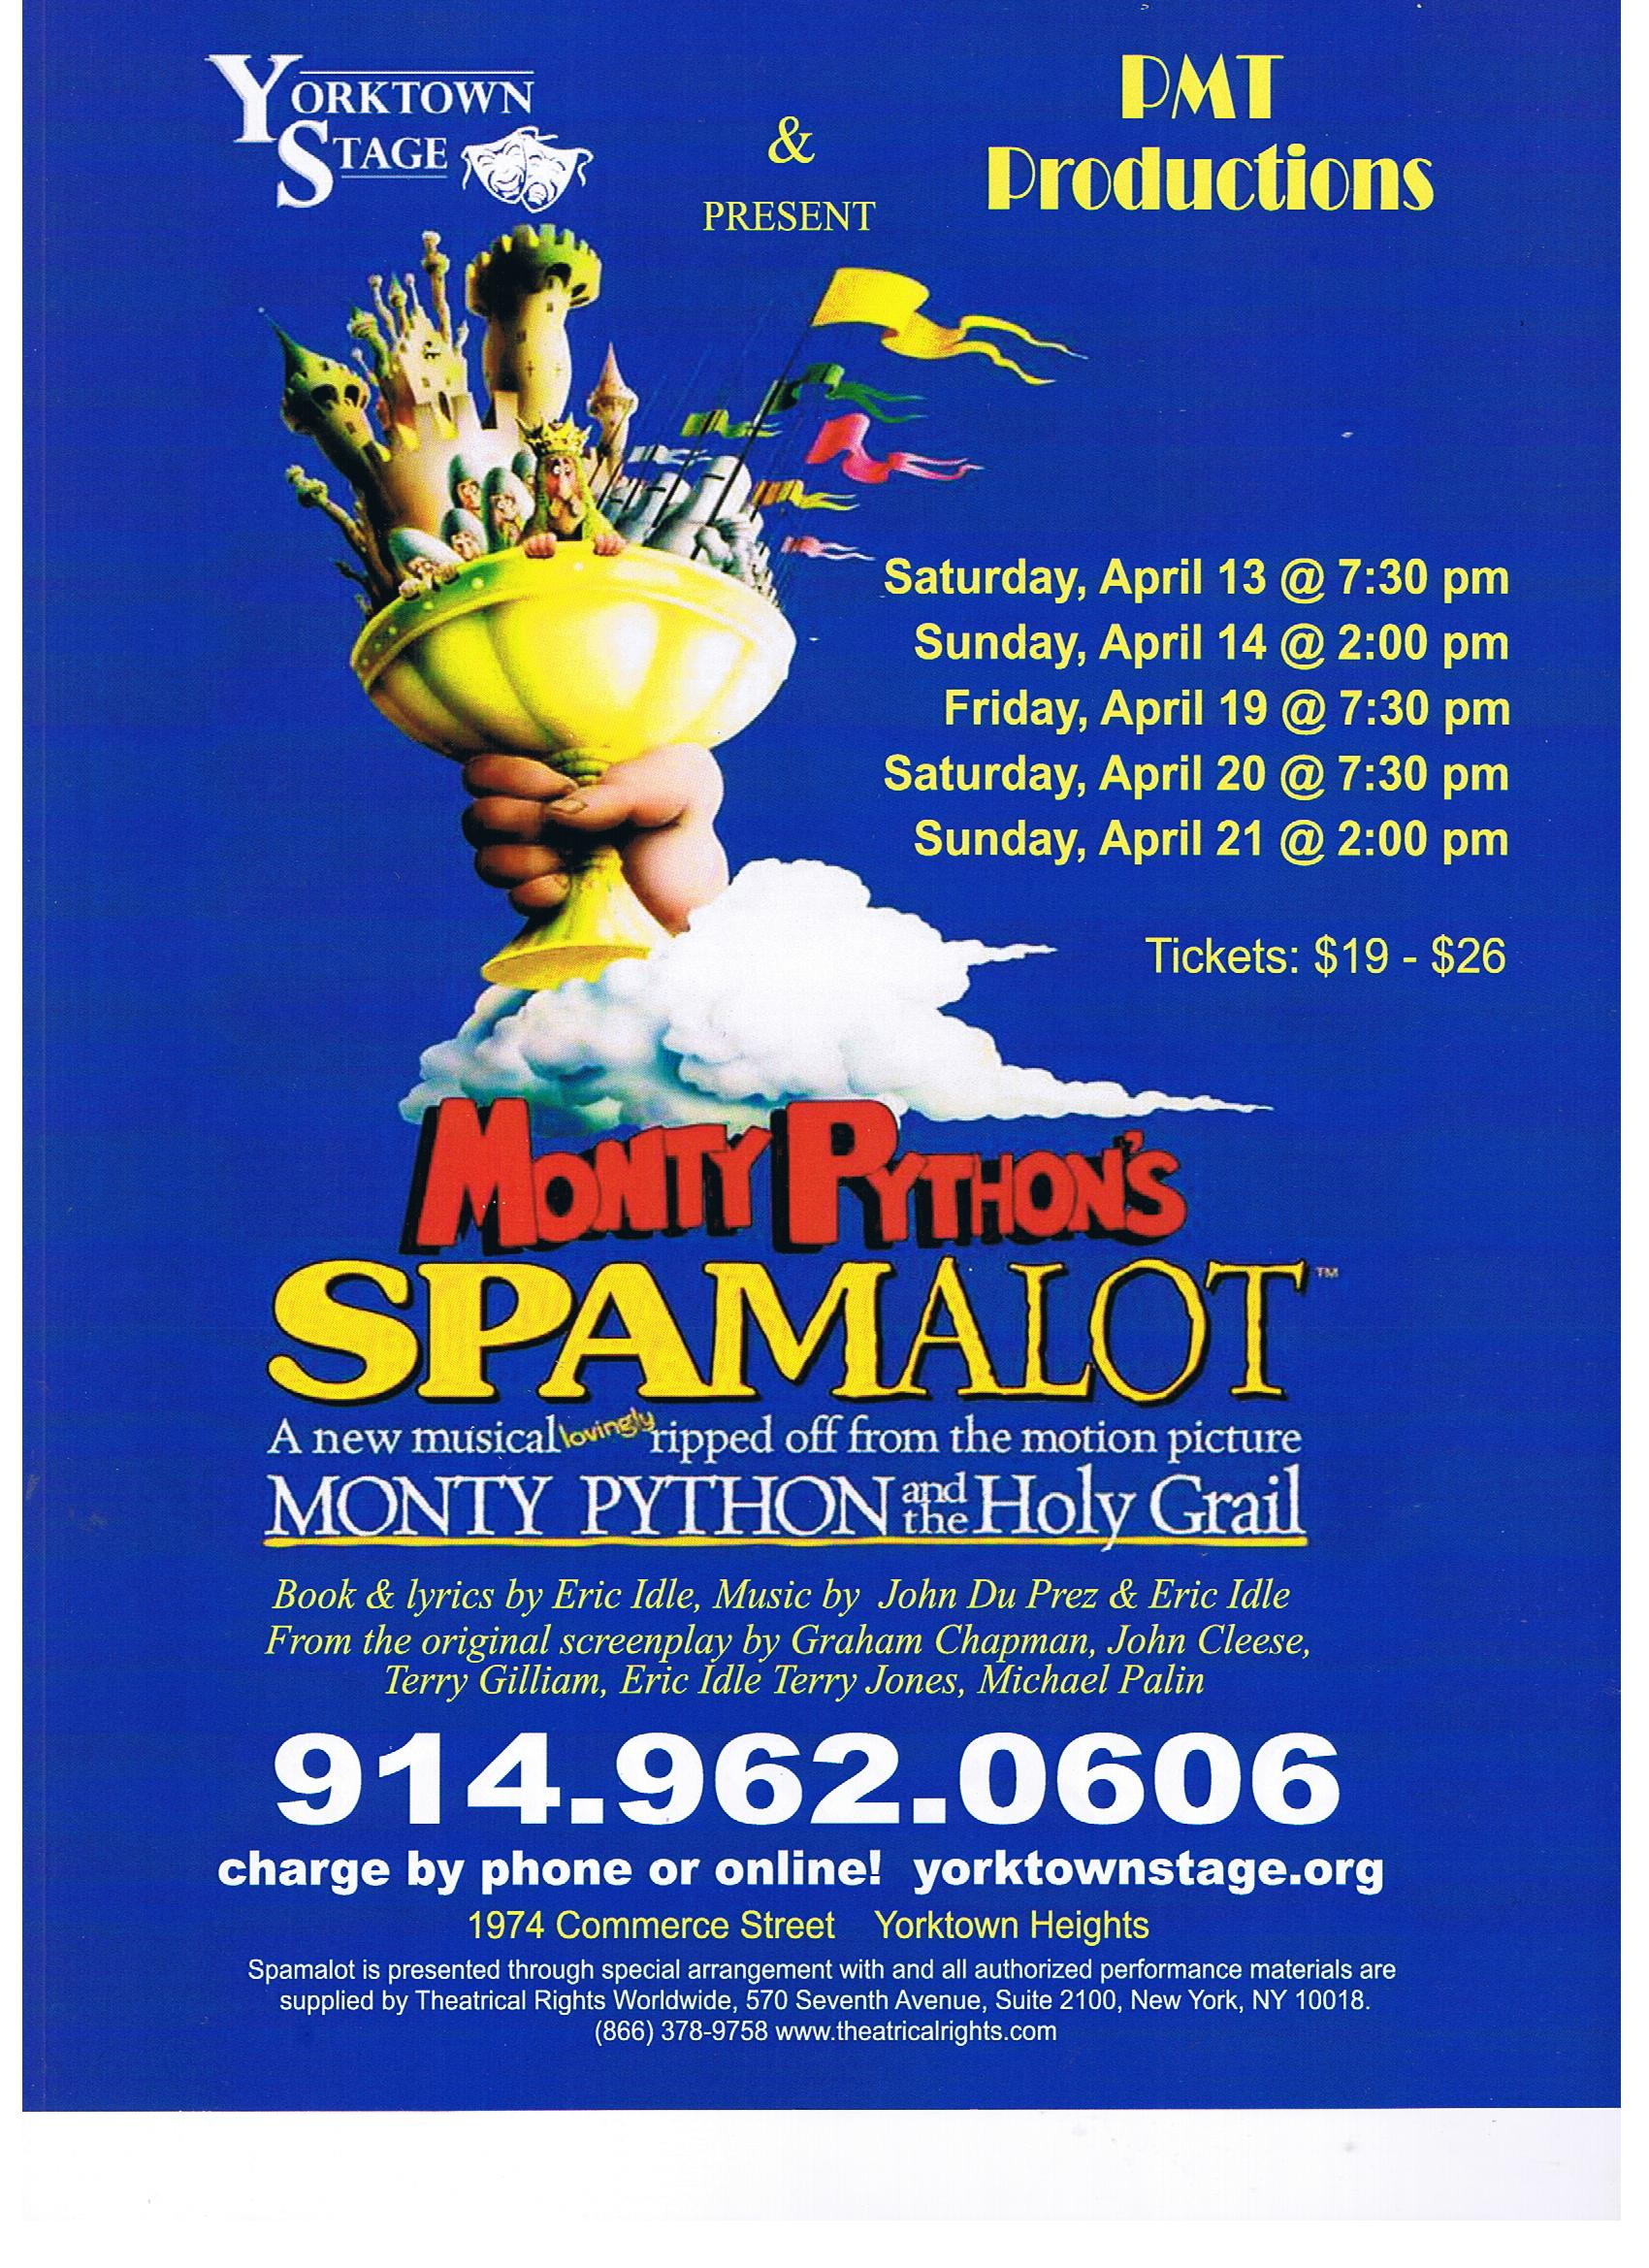 """PMT Productions rehearsed """"Spamalot"""" in our studio. Wht a funny cast and lots of laughs for 6 weeks!"""